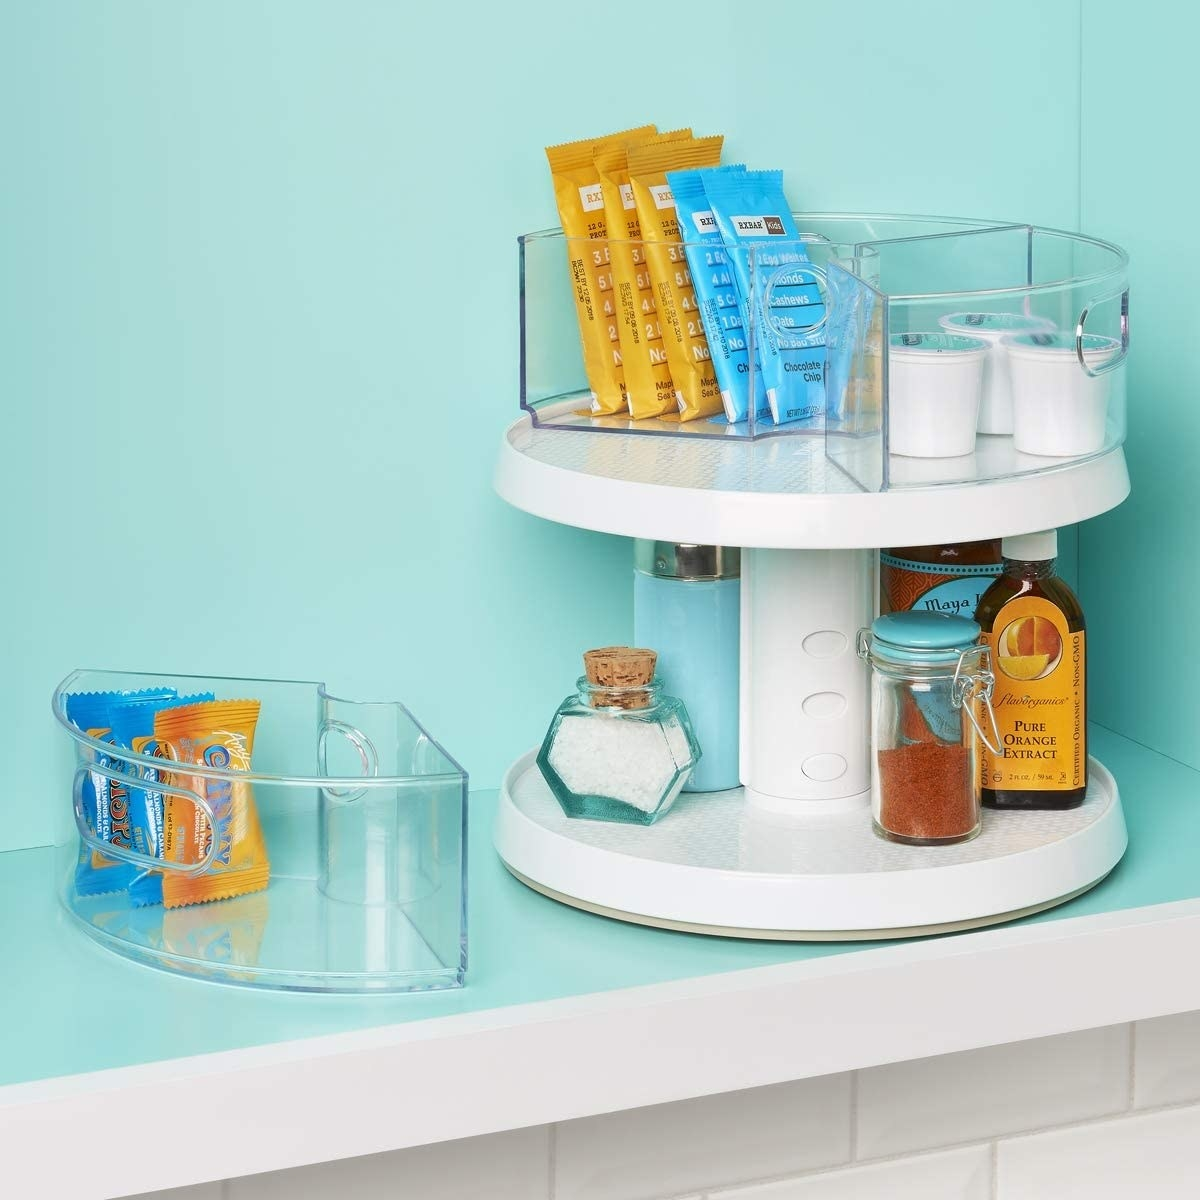 turntable with sugar and honey and other small kitchen items organized neatly on both shelves